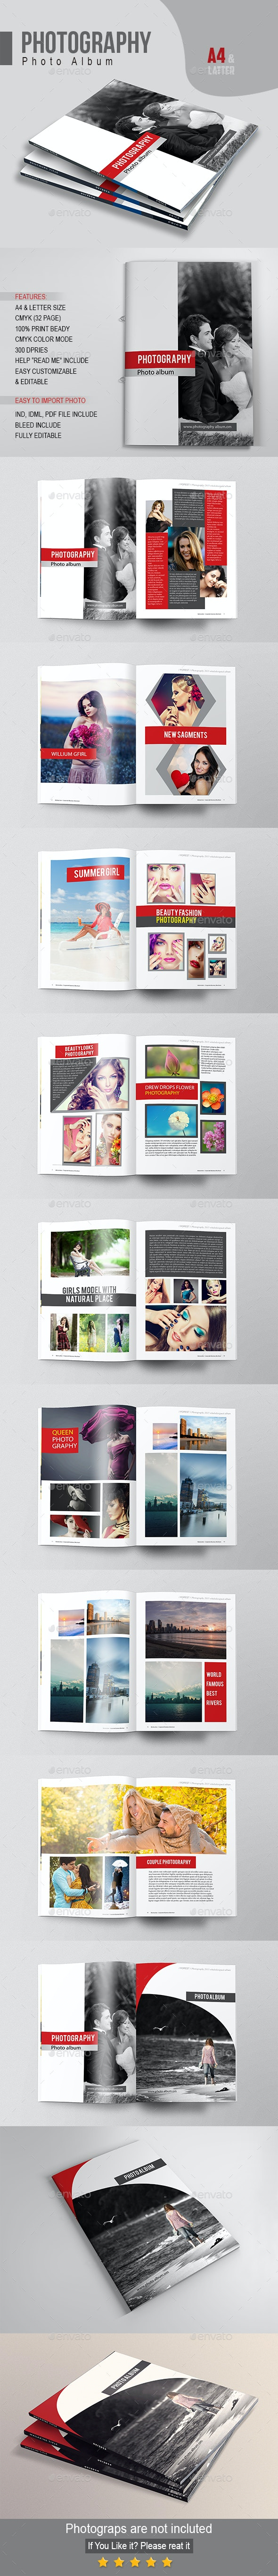 Photography Photo Album - Photo Albums Print Templates